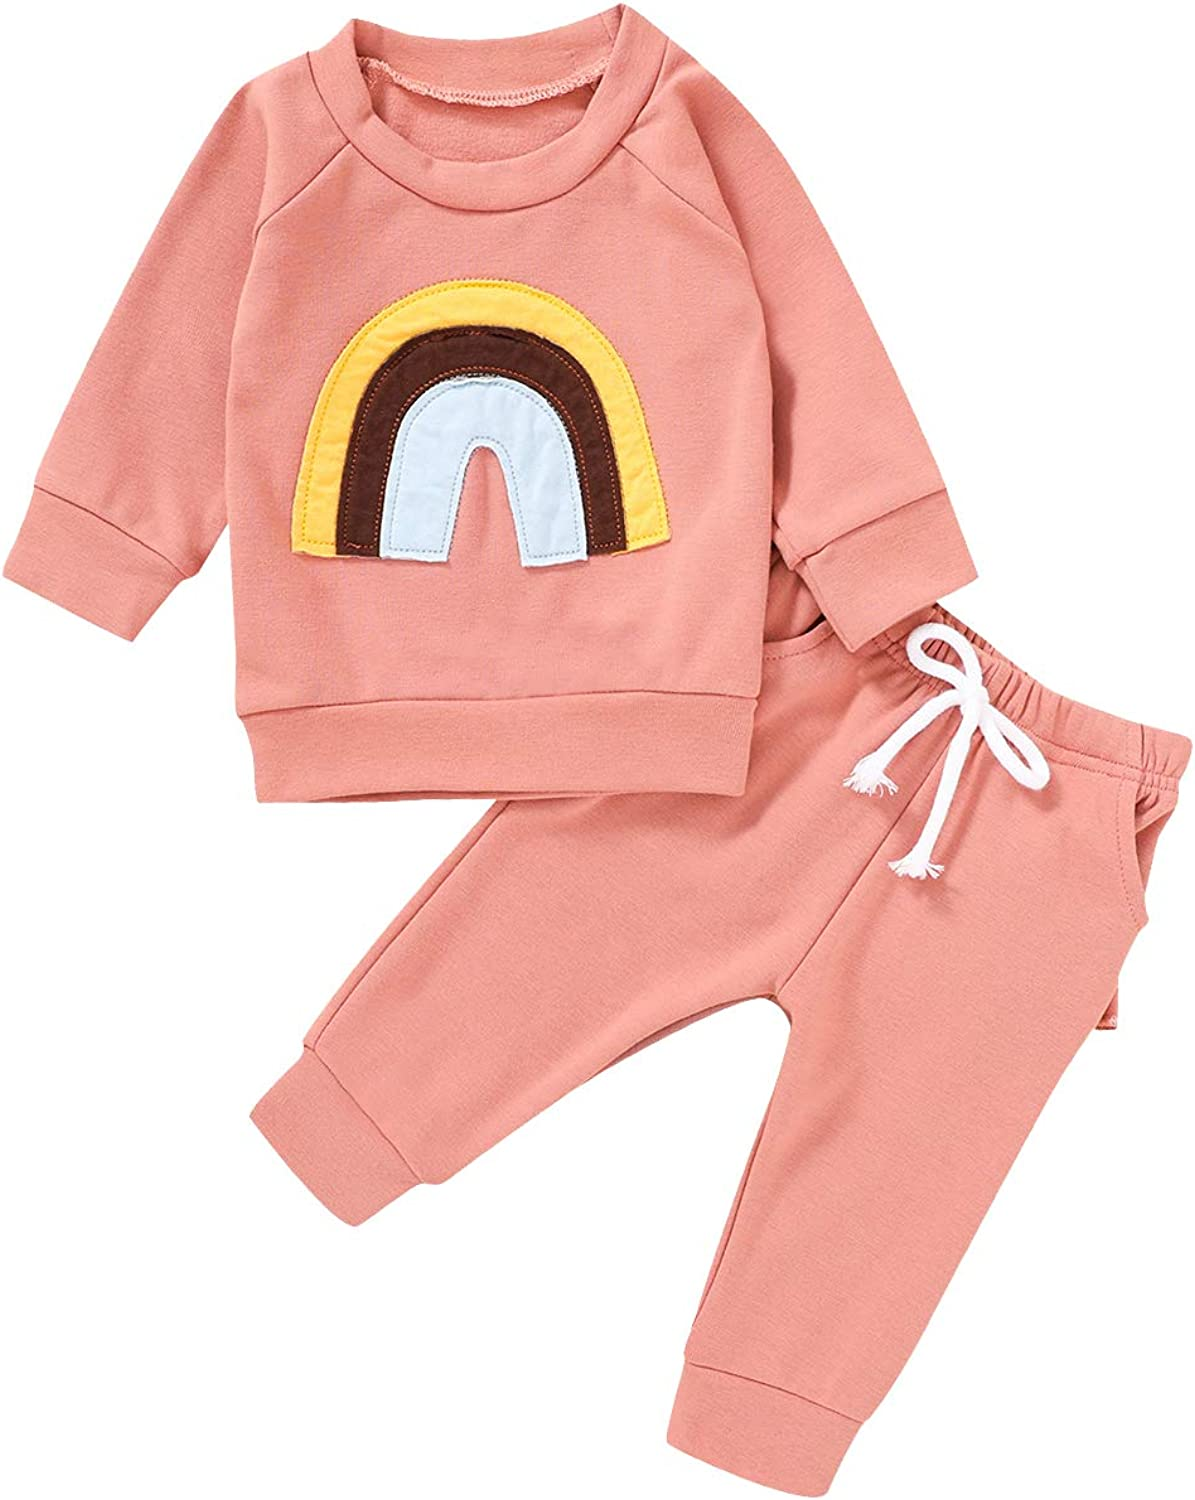 Infant Baby Girls Outfits Rainbow Print Sweatshirt Long Sleeve Pullover Shirt Tops Ruffle Pants Fall Winter Clothes Set